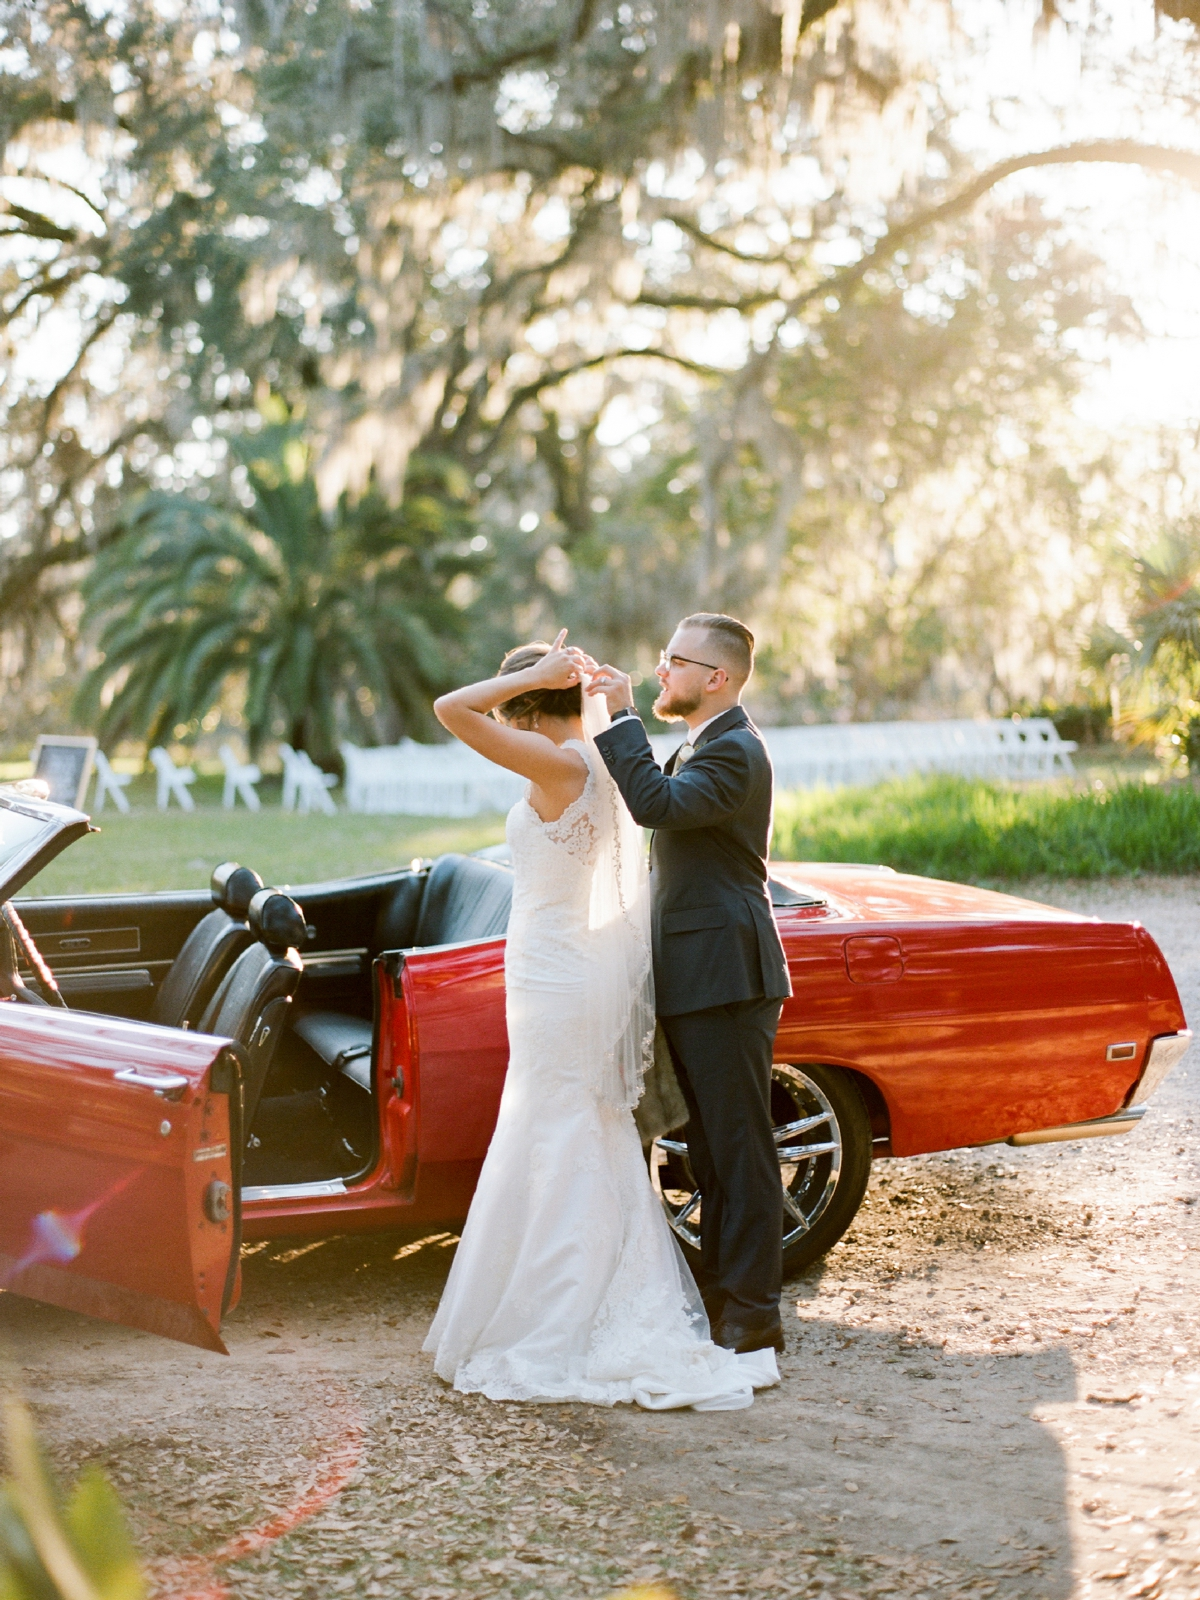 goodwood museum tallahassee wedding photographer - tallahassee florida - shannon griffin_0050.jpg